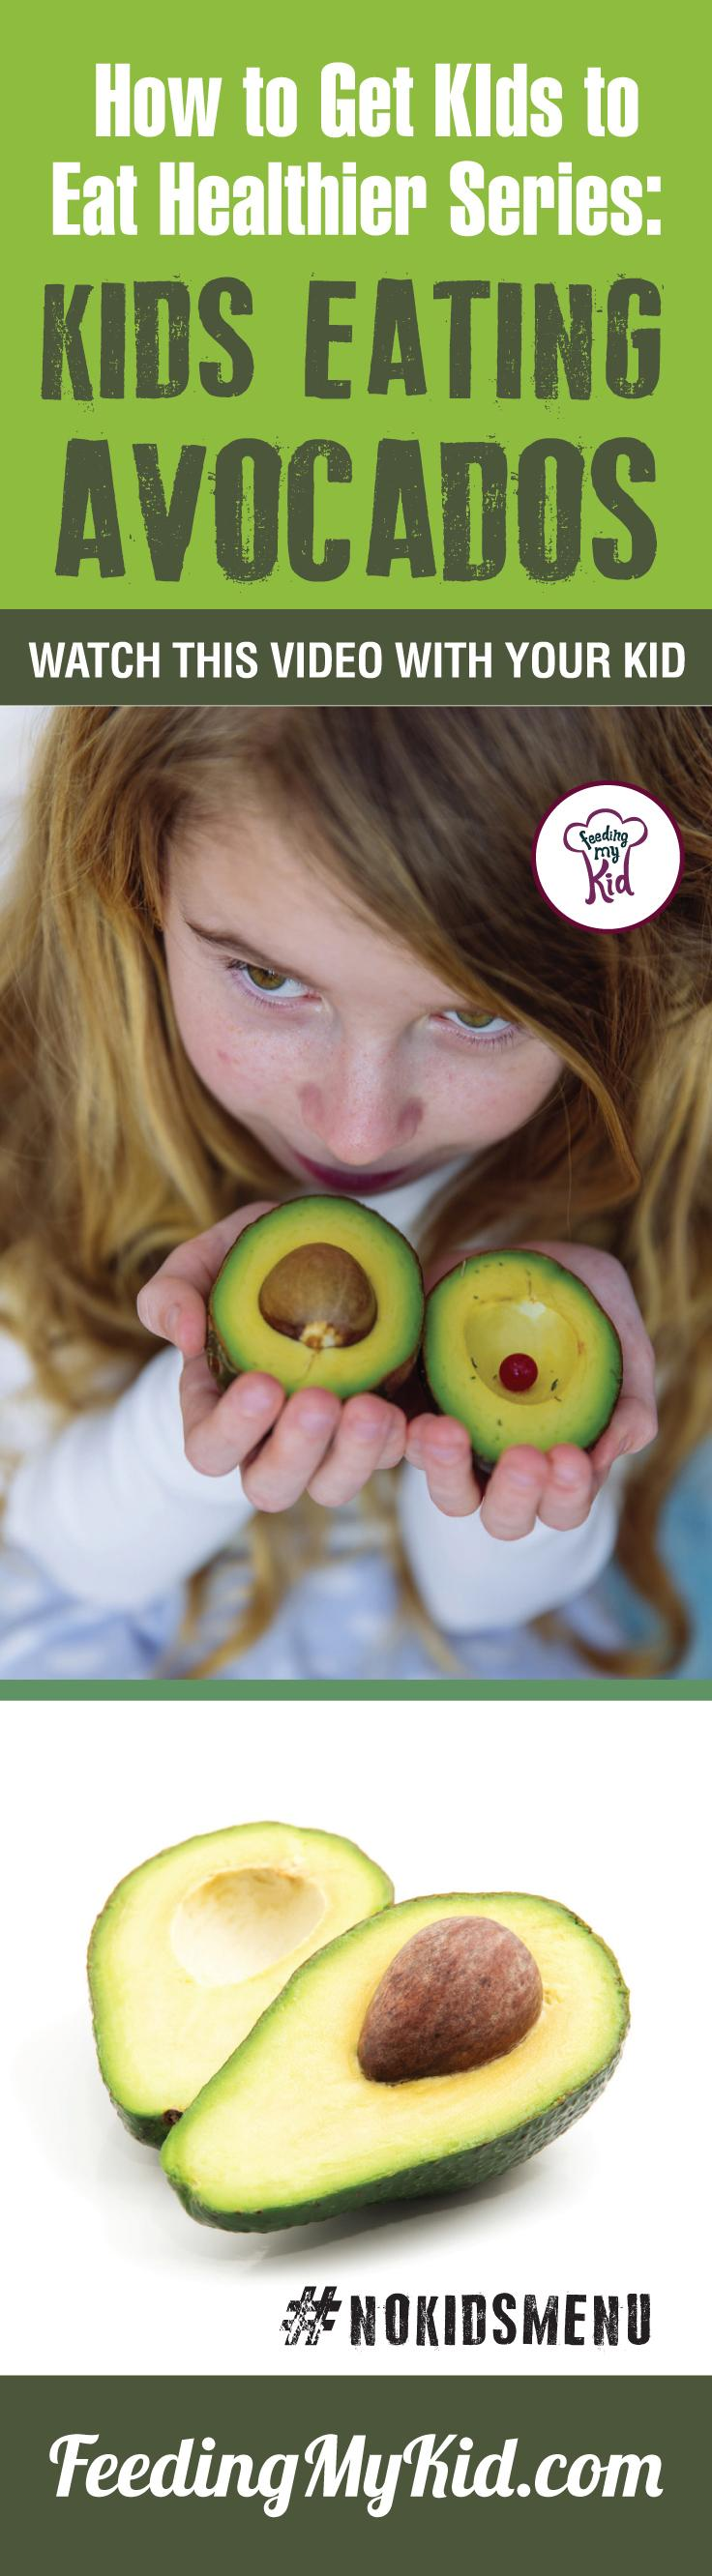 Want your kids to eat avocados? Learn how to get kids to eat vegetables by having them watch these videos of children eating veggies. Find out how it works here. Feeding My Kid is a filled with all the information you need about how to raise your kids, from healthy tips to nutritious recipes. #pickyeating #getkidstoeat #Avocados #NoKidsMenu